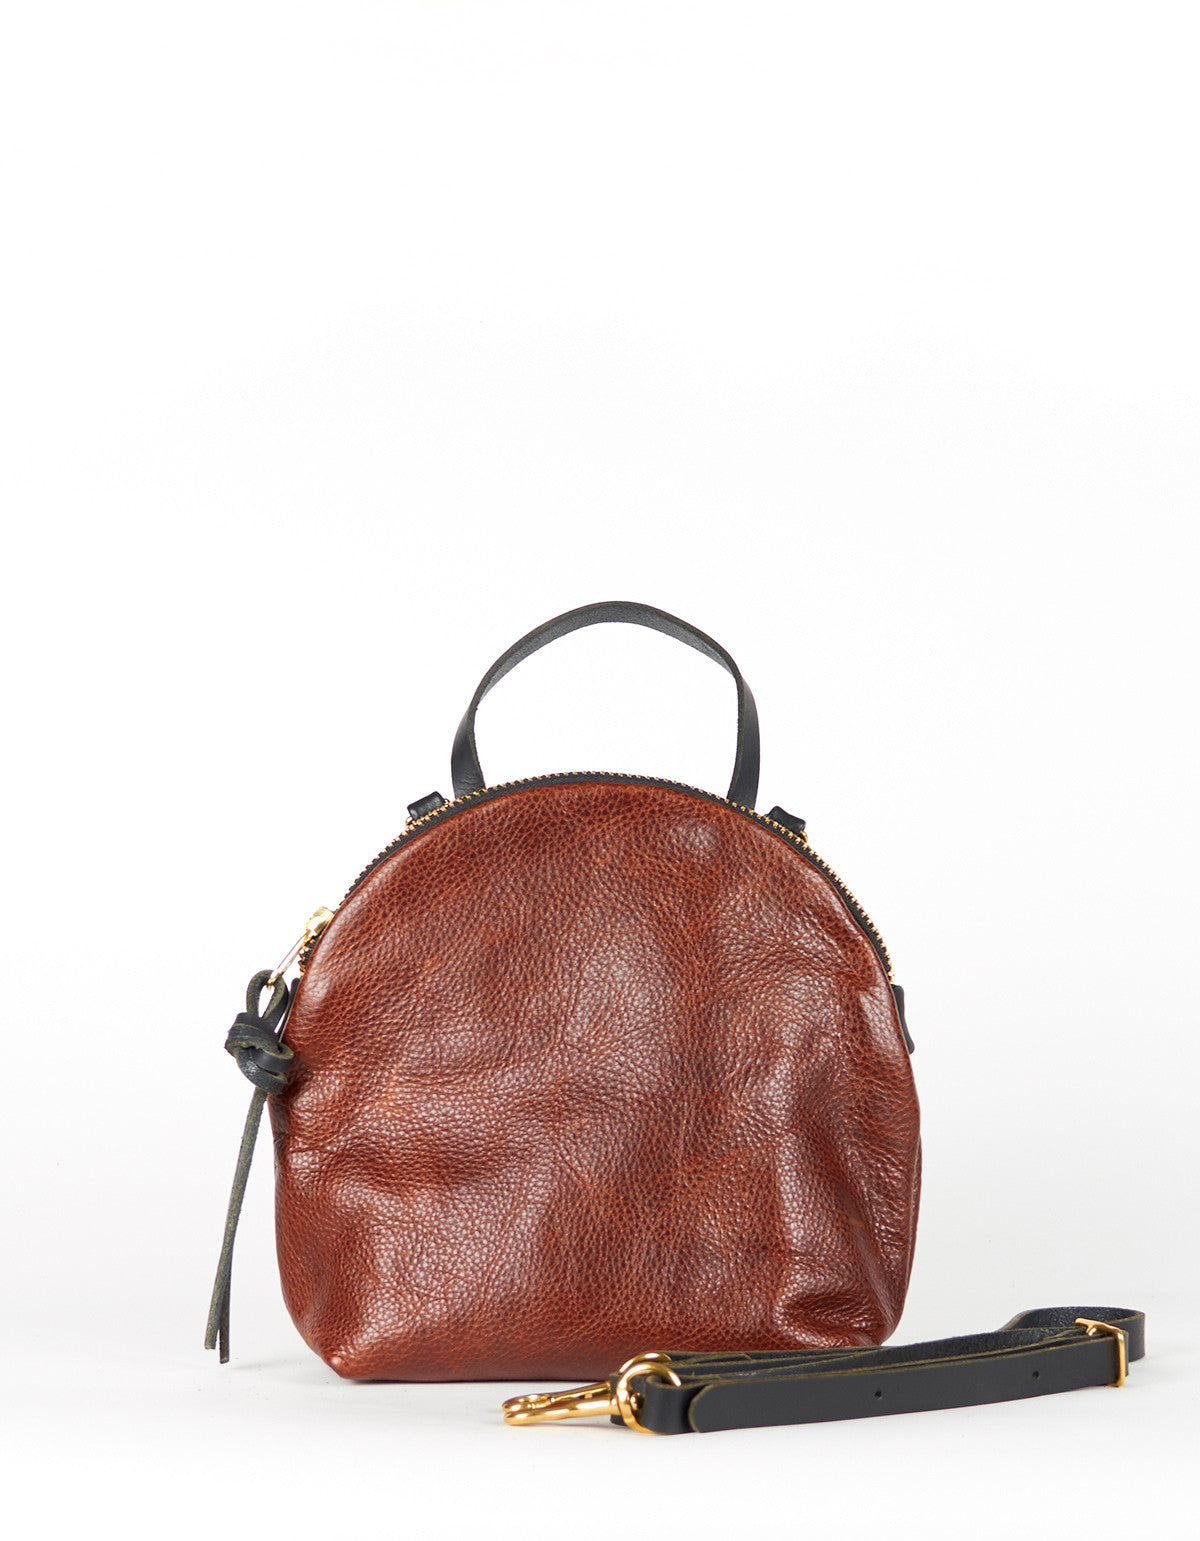 Eleven Thirty Anni Mini Bag Cognac - Still Life - 1